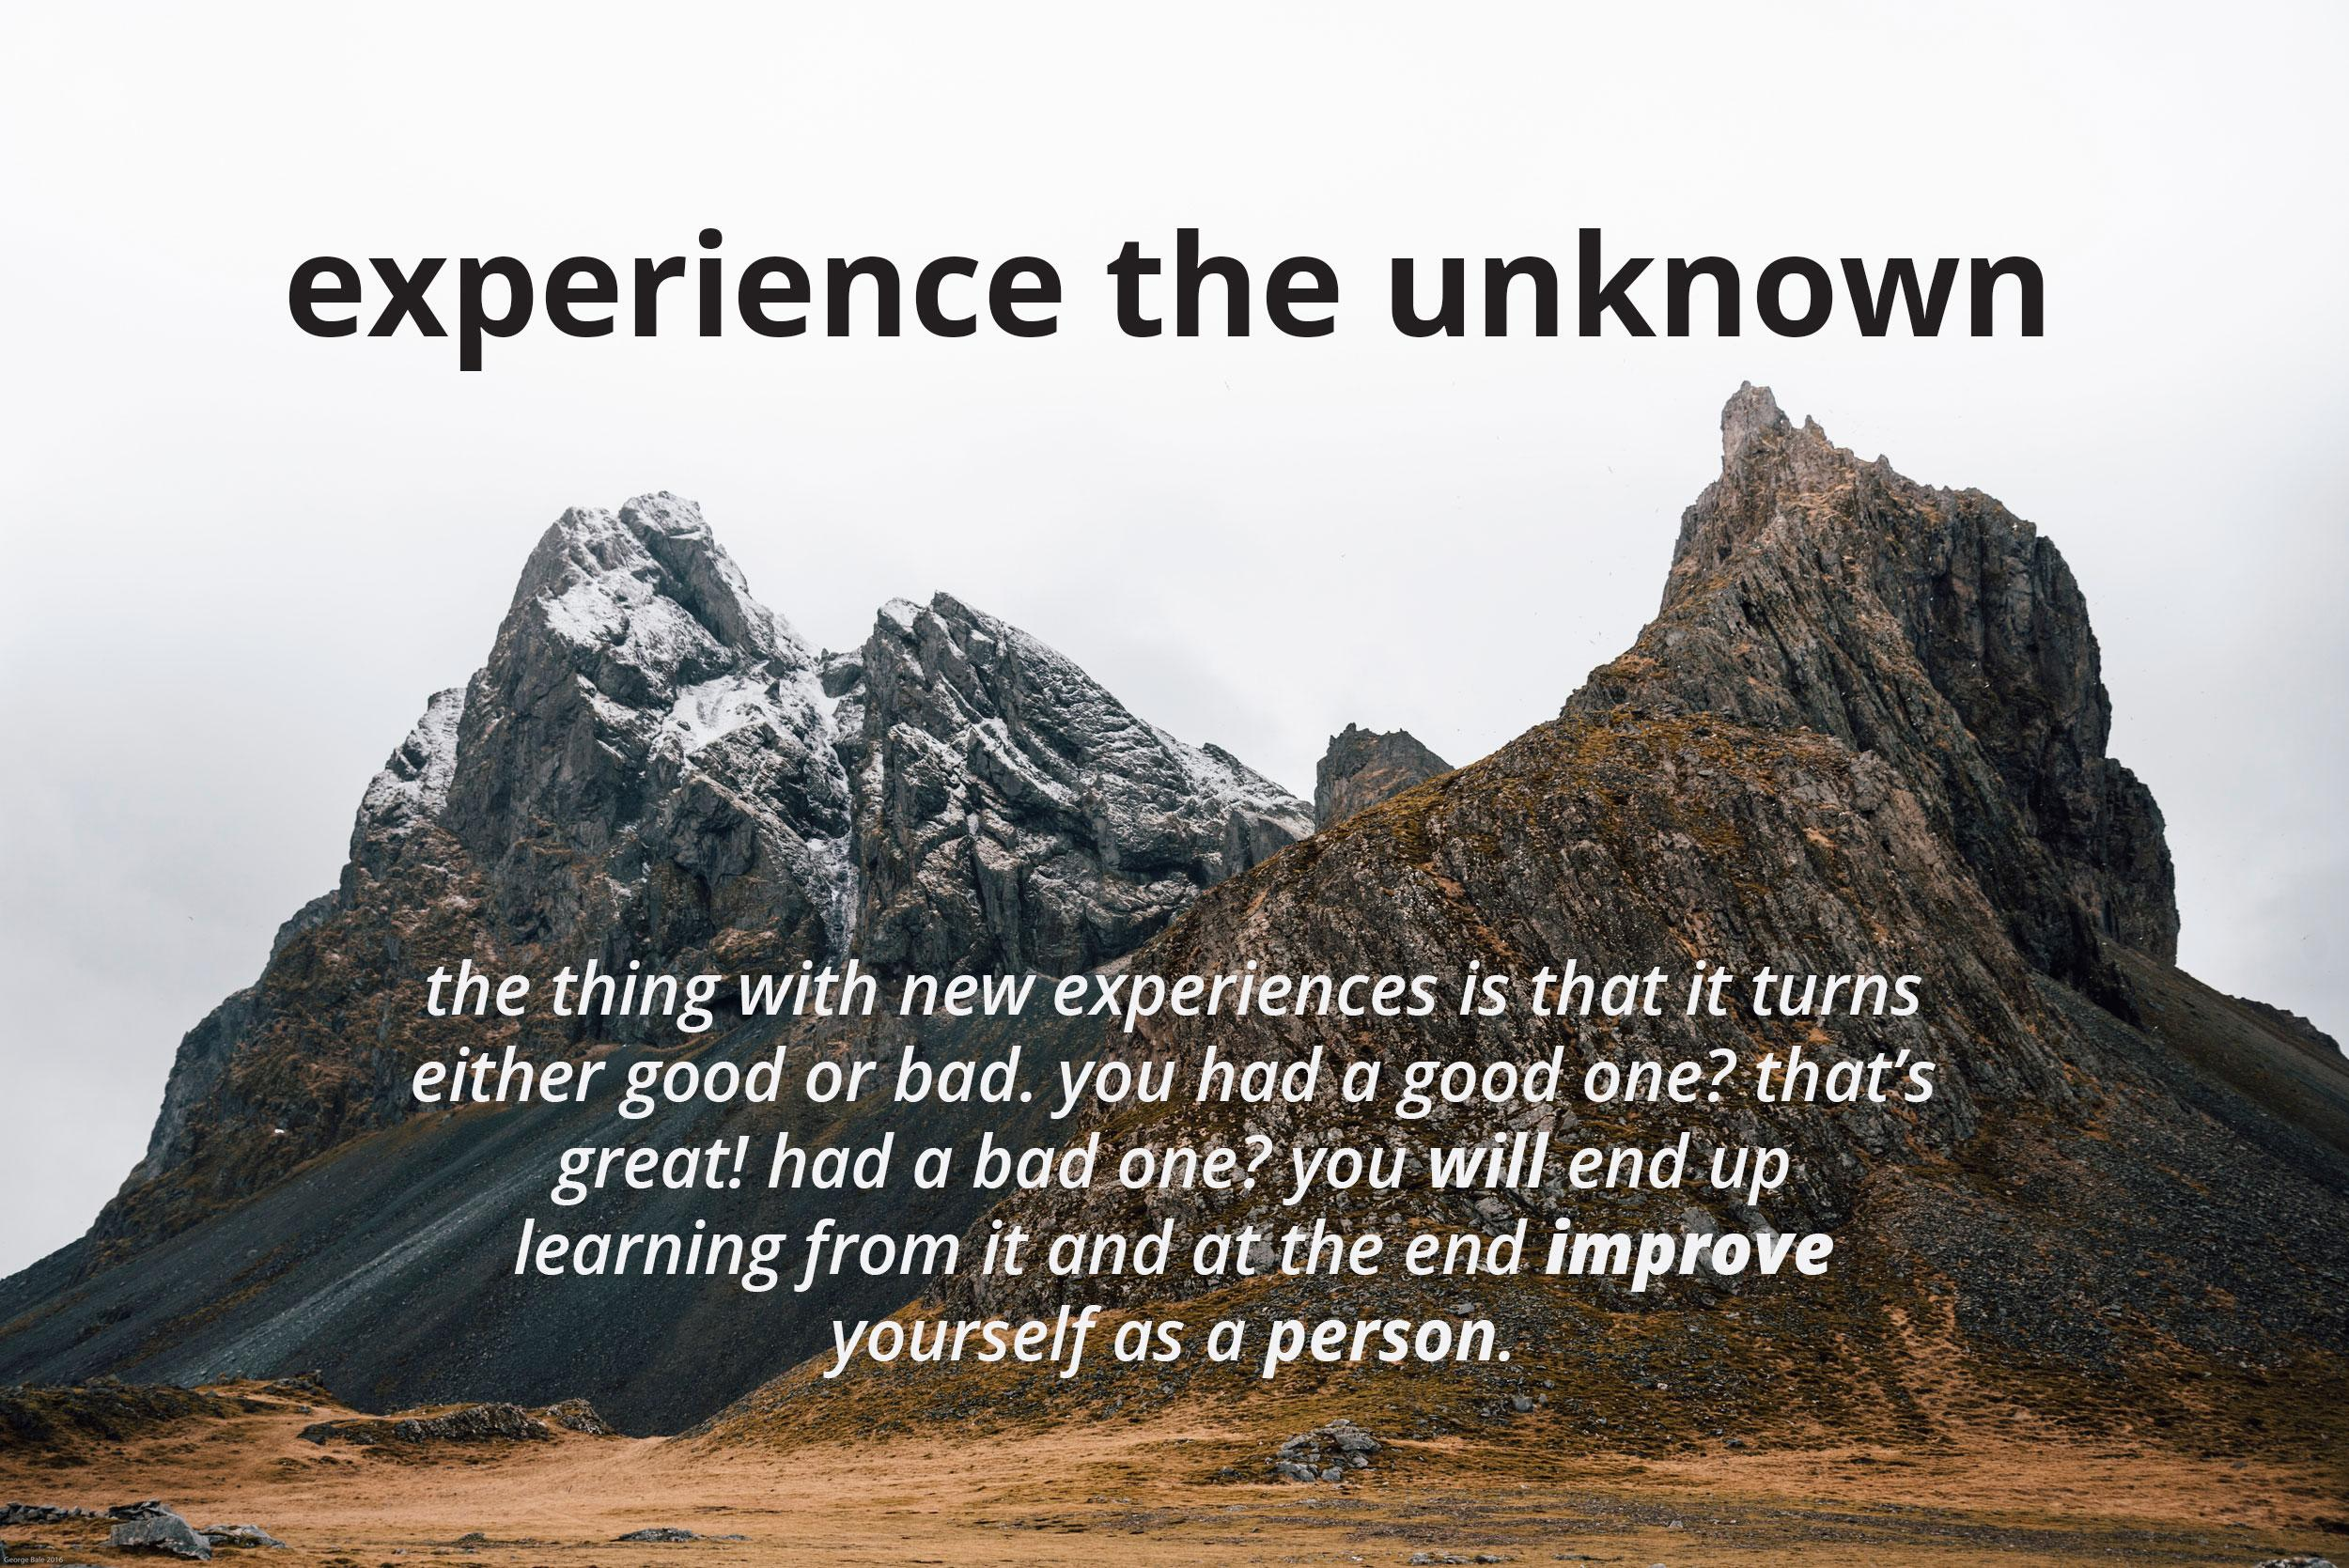 [Image] Why it is so important to challenge yourself and experience the unknown.